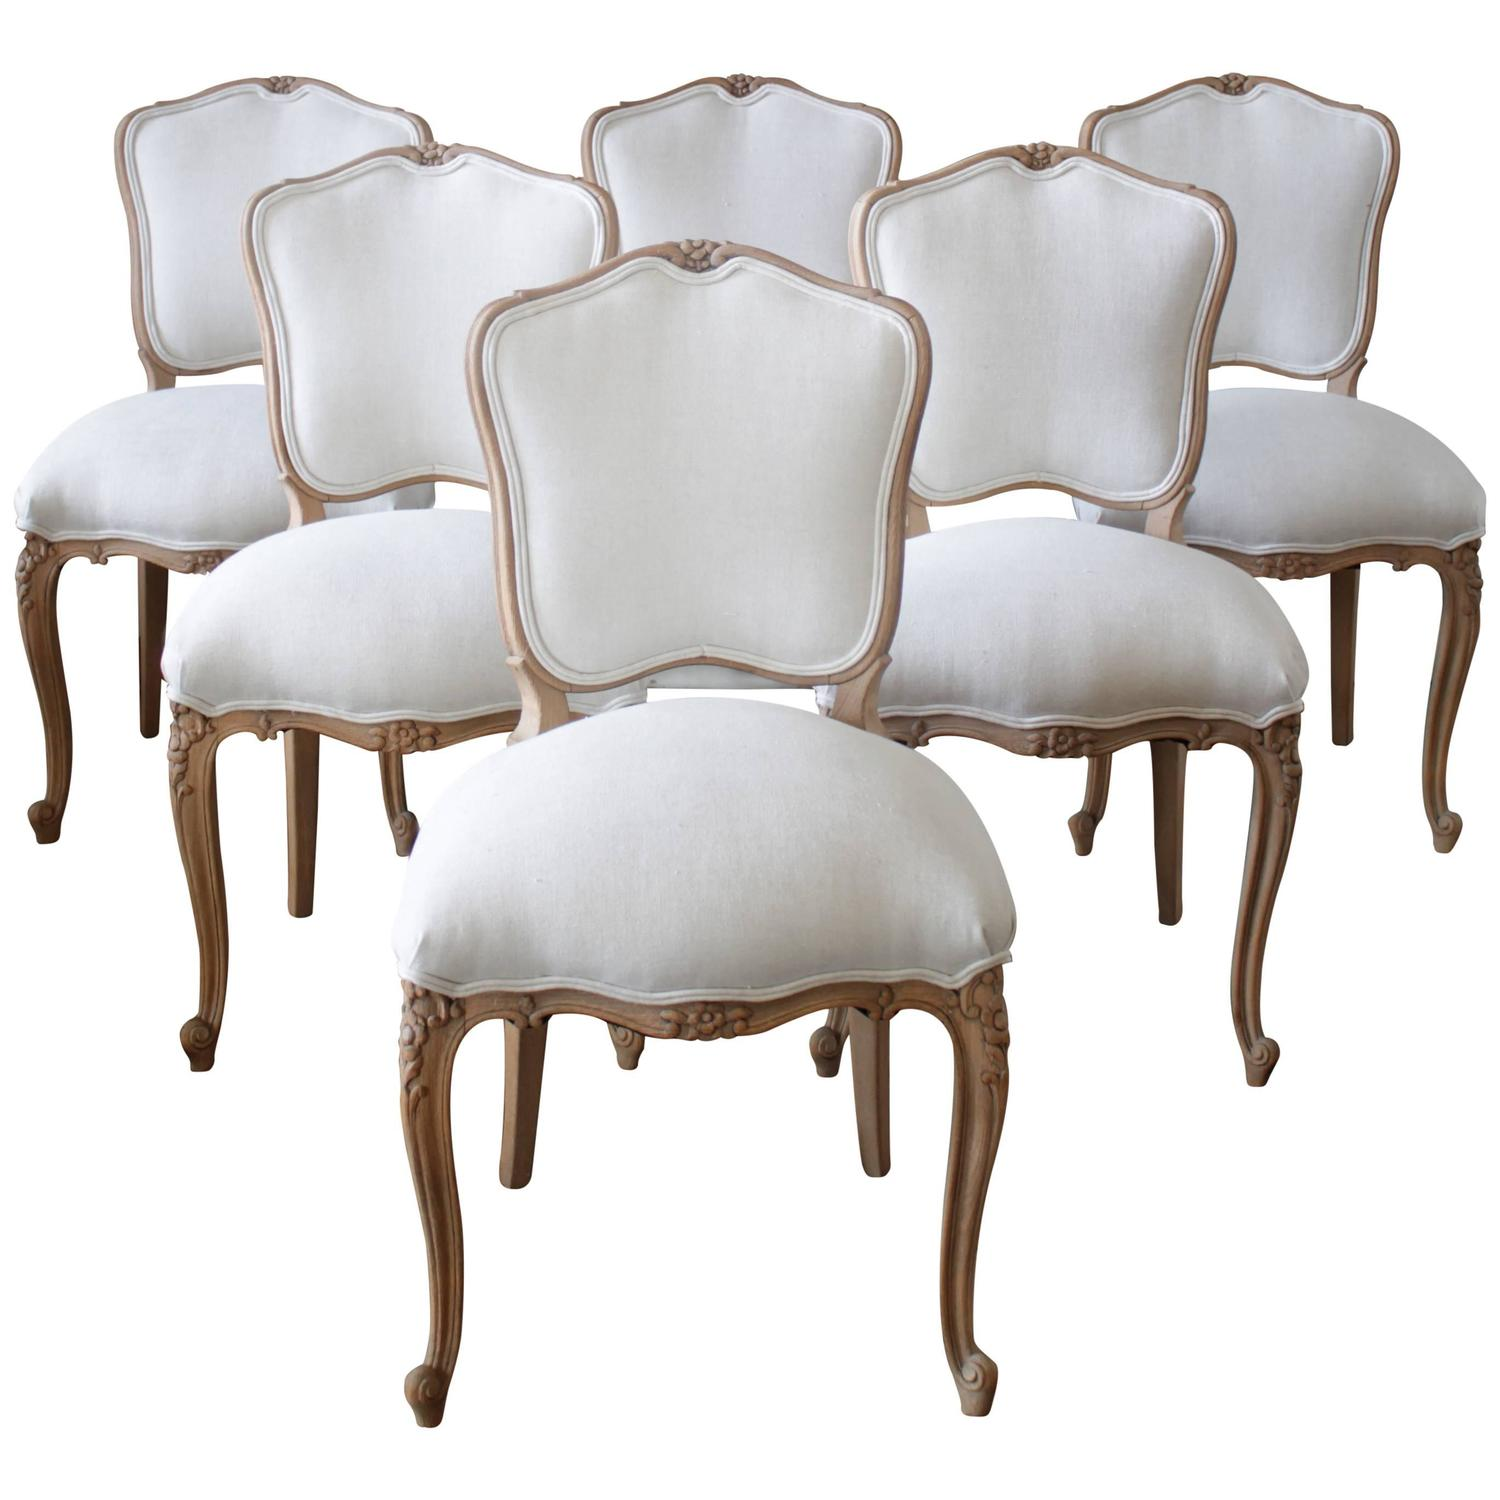 Louis xv dining chair - Louis Xv Dining Chair